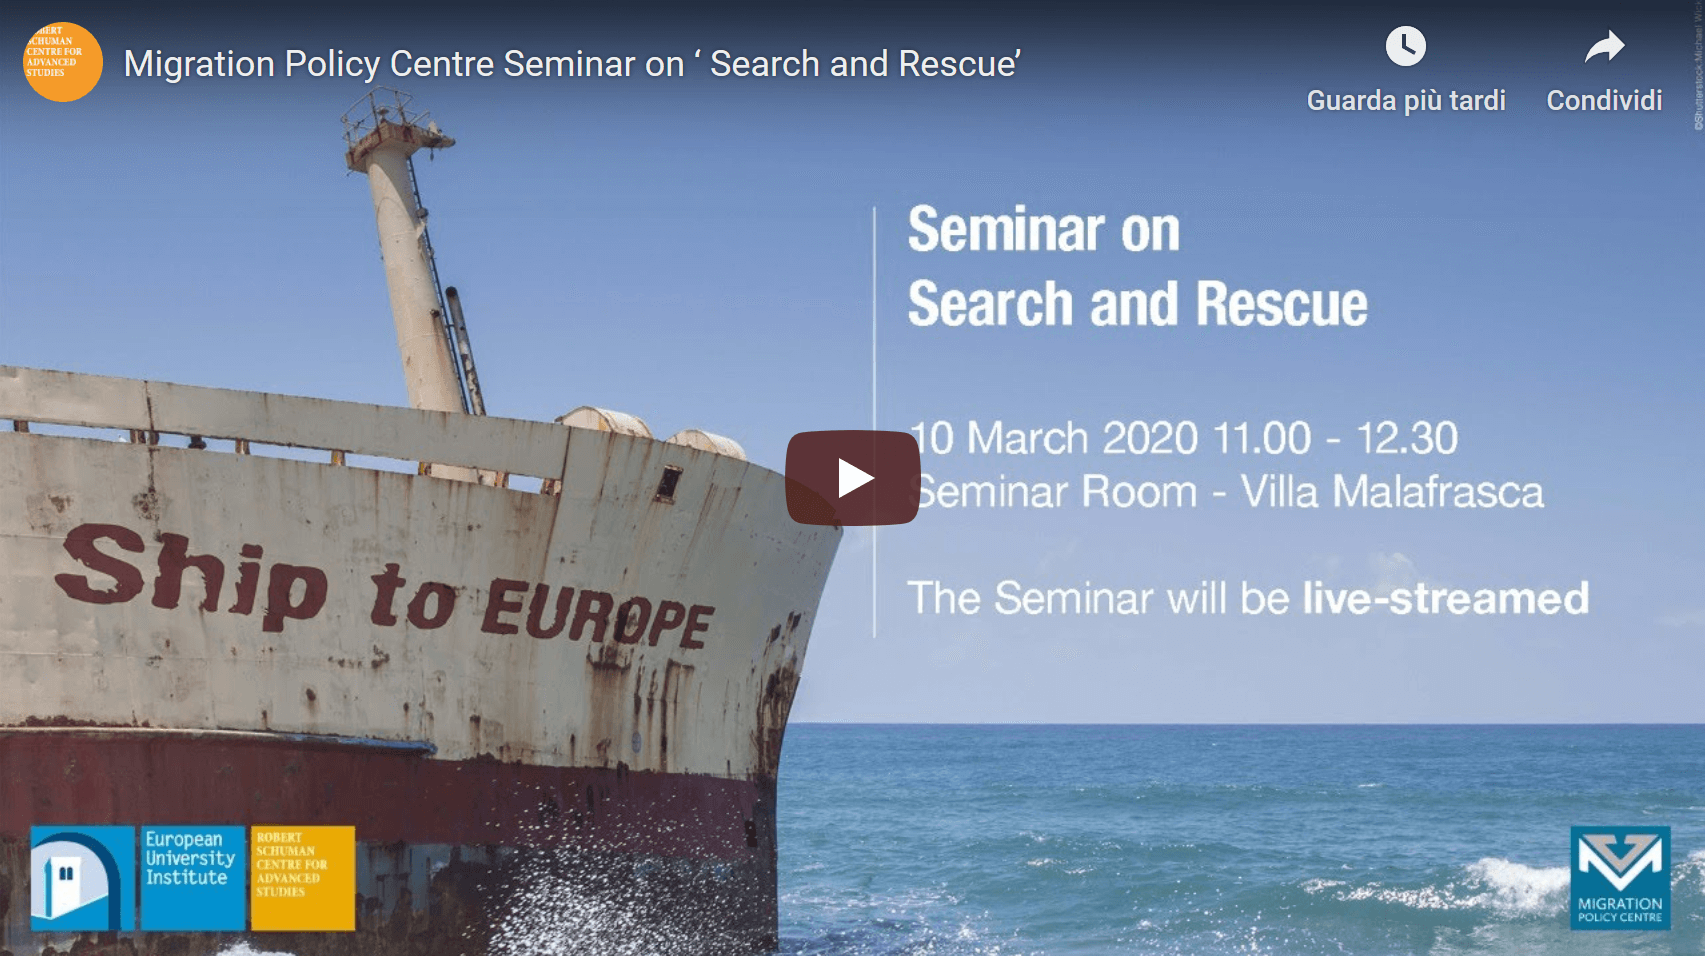 search-rescue-seminar-mpc